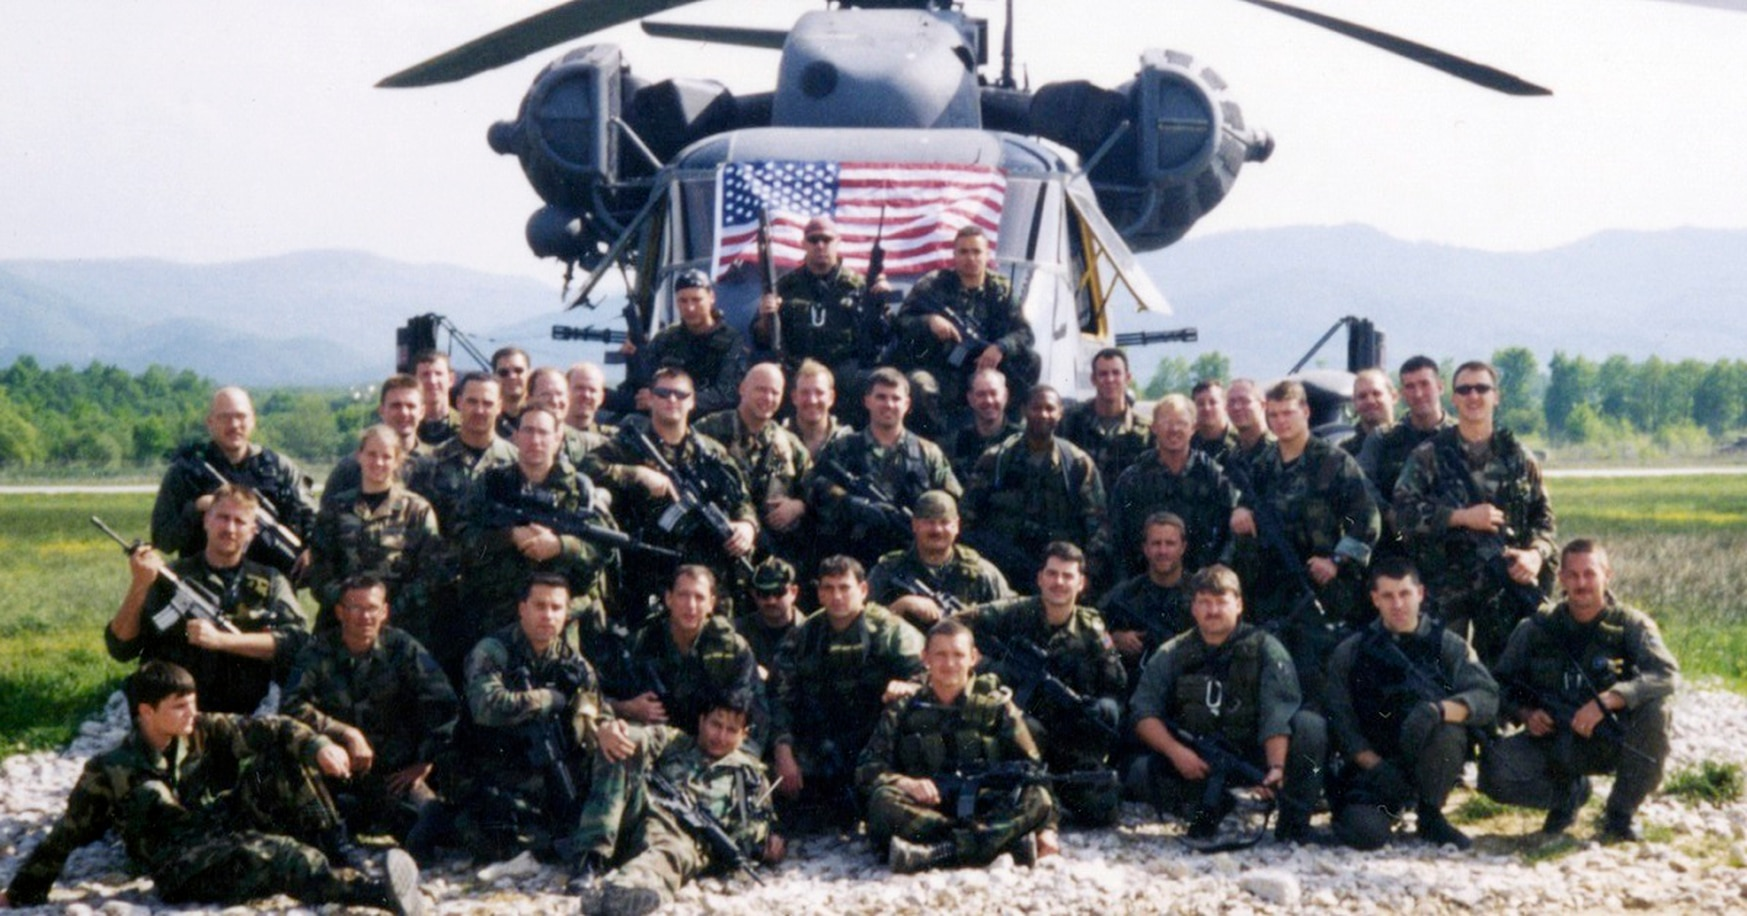 Special operations soldiers and airmen who took part in Goldfein's rescue pose in front of a helo at Tuzla Air Base, Bosnia. (Air Force)